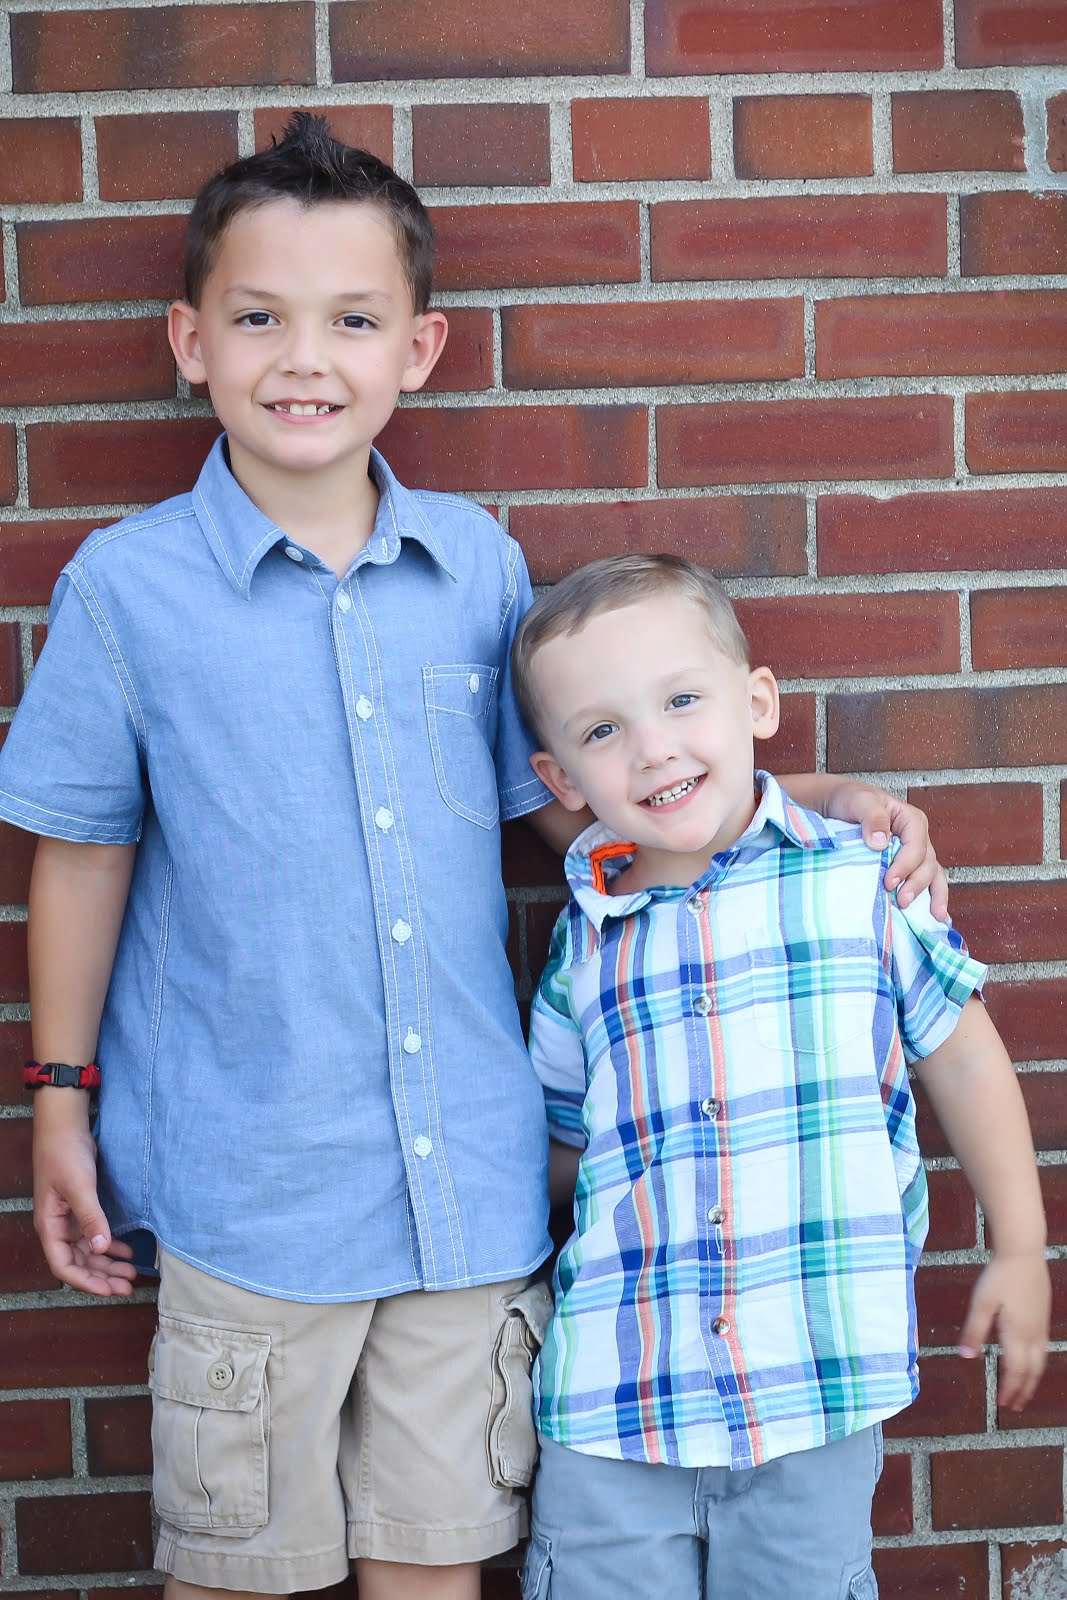 Grant and Asher